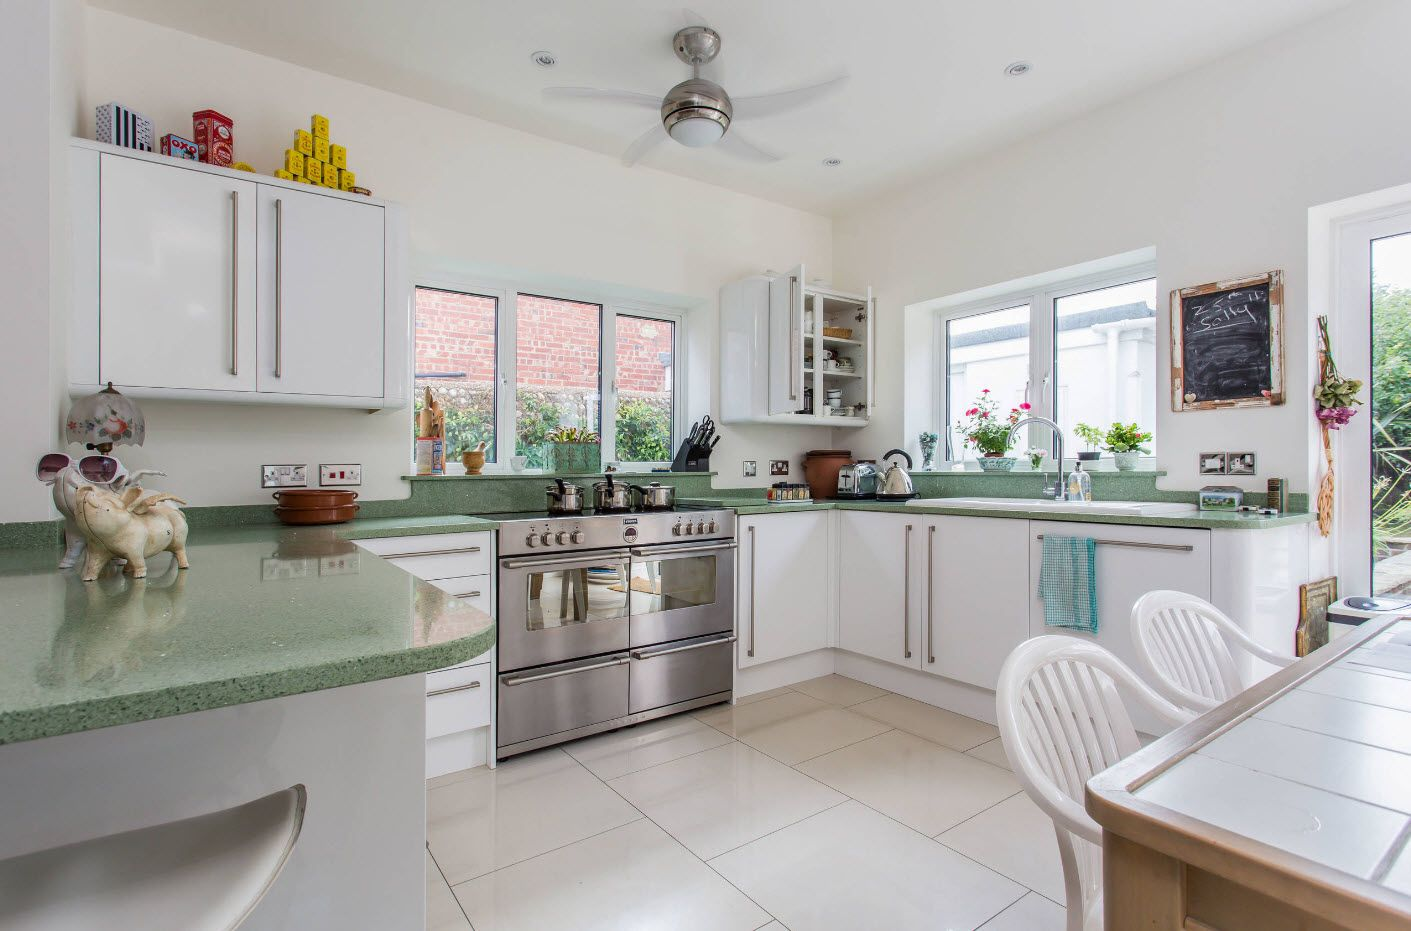 Large U-shaped kitchen layout and steel fan at the top